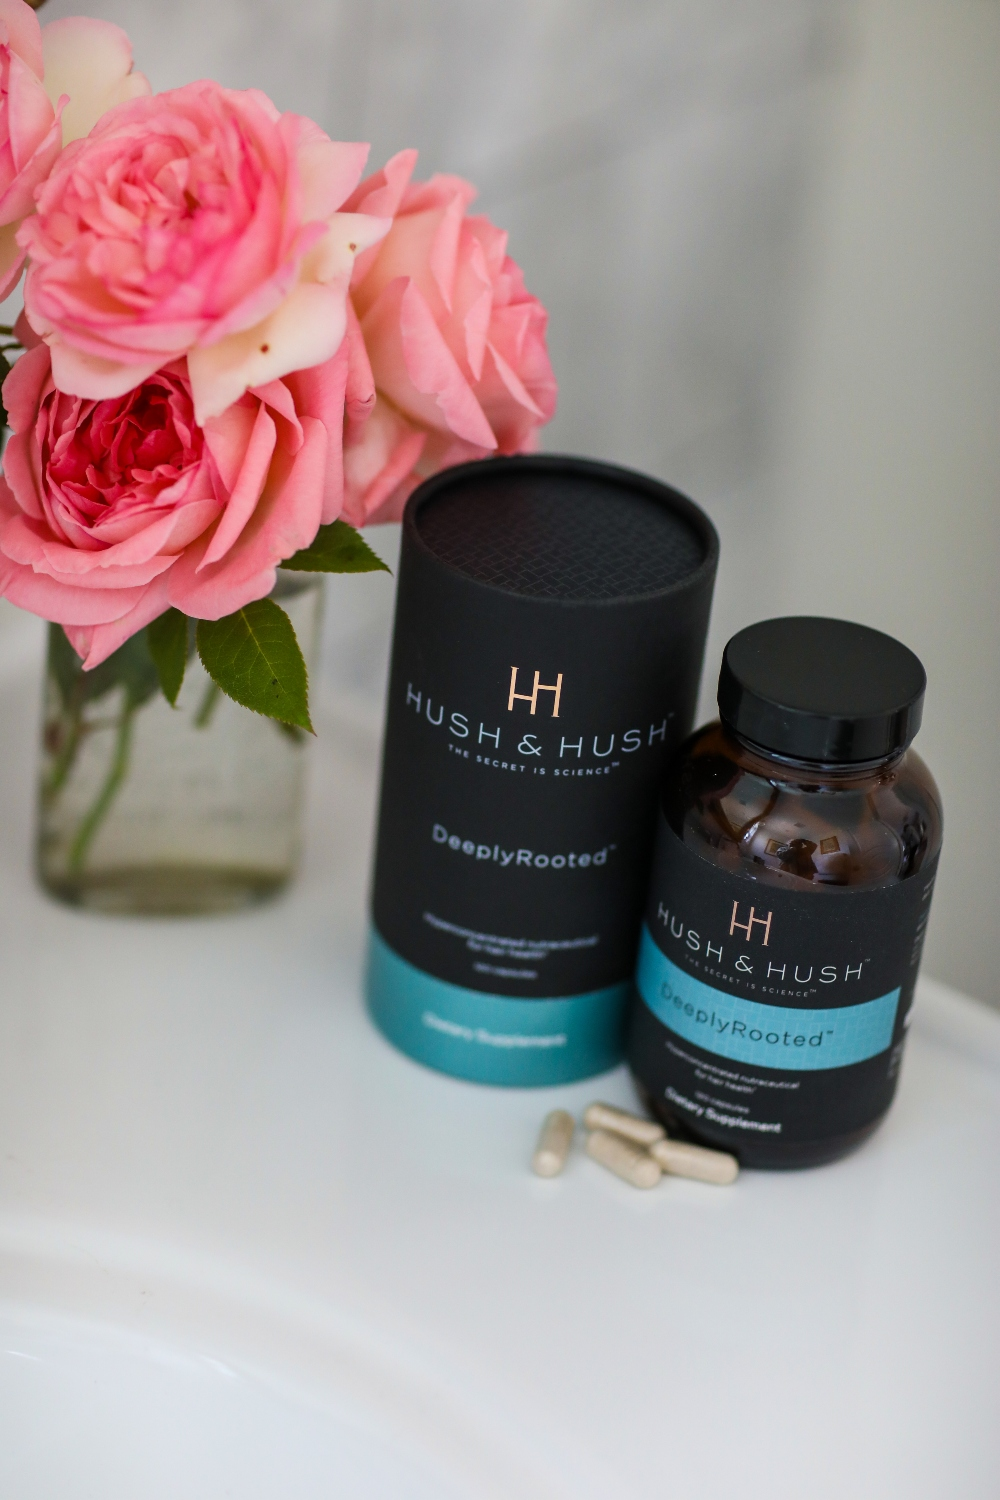 Want to know the secret to healthy hair? Orange County Blogger Debbie Savage is sharing her lastest secret to healthy hair - Hush Hush Supplements. See why you need them HERE!